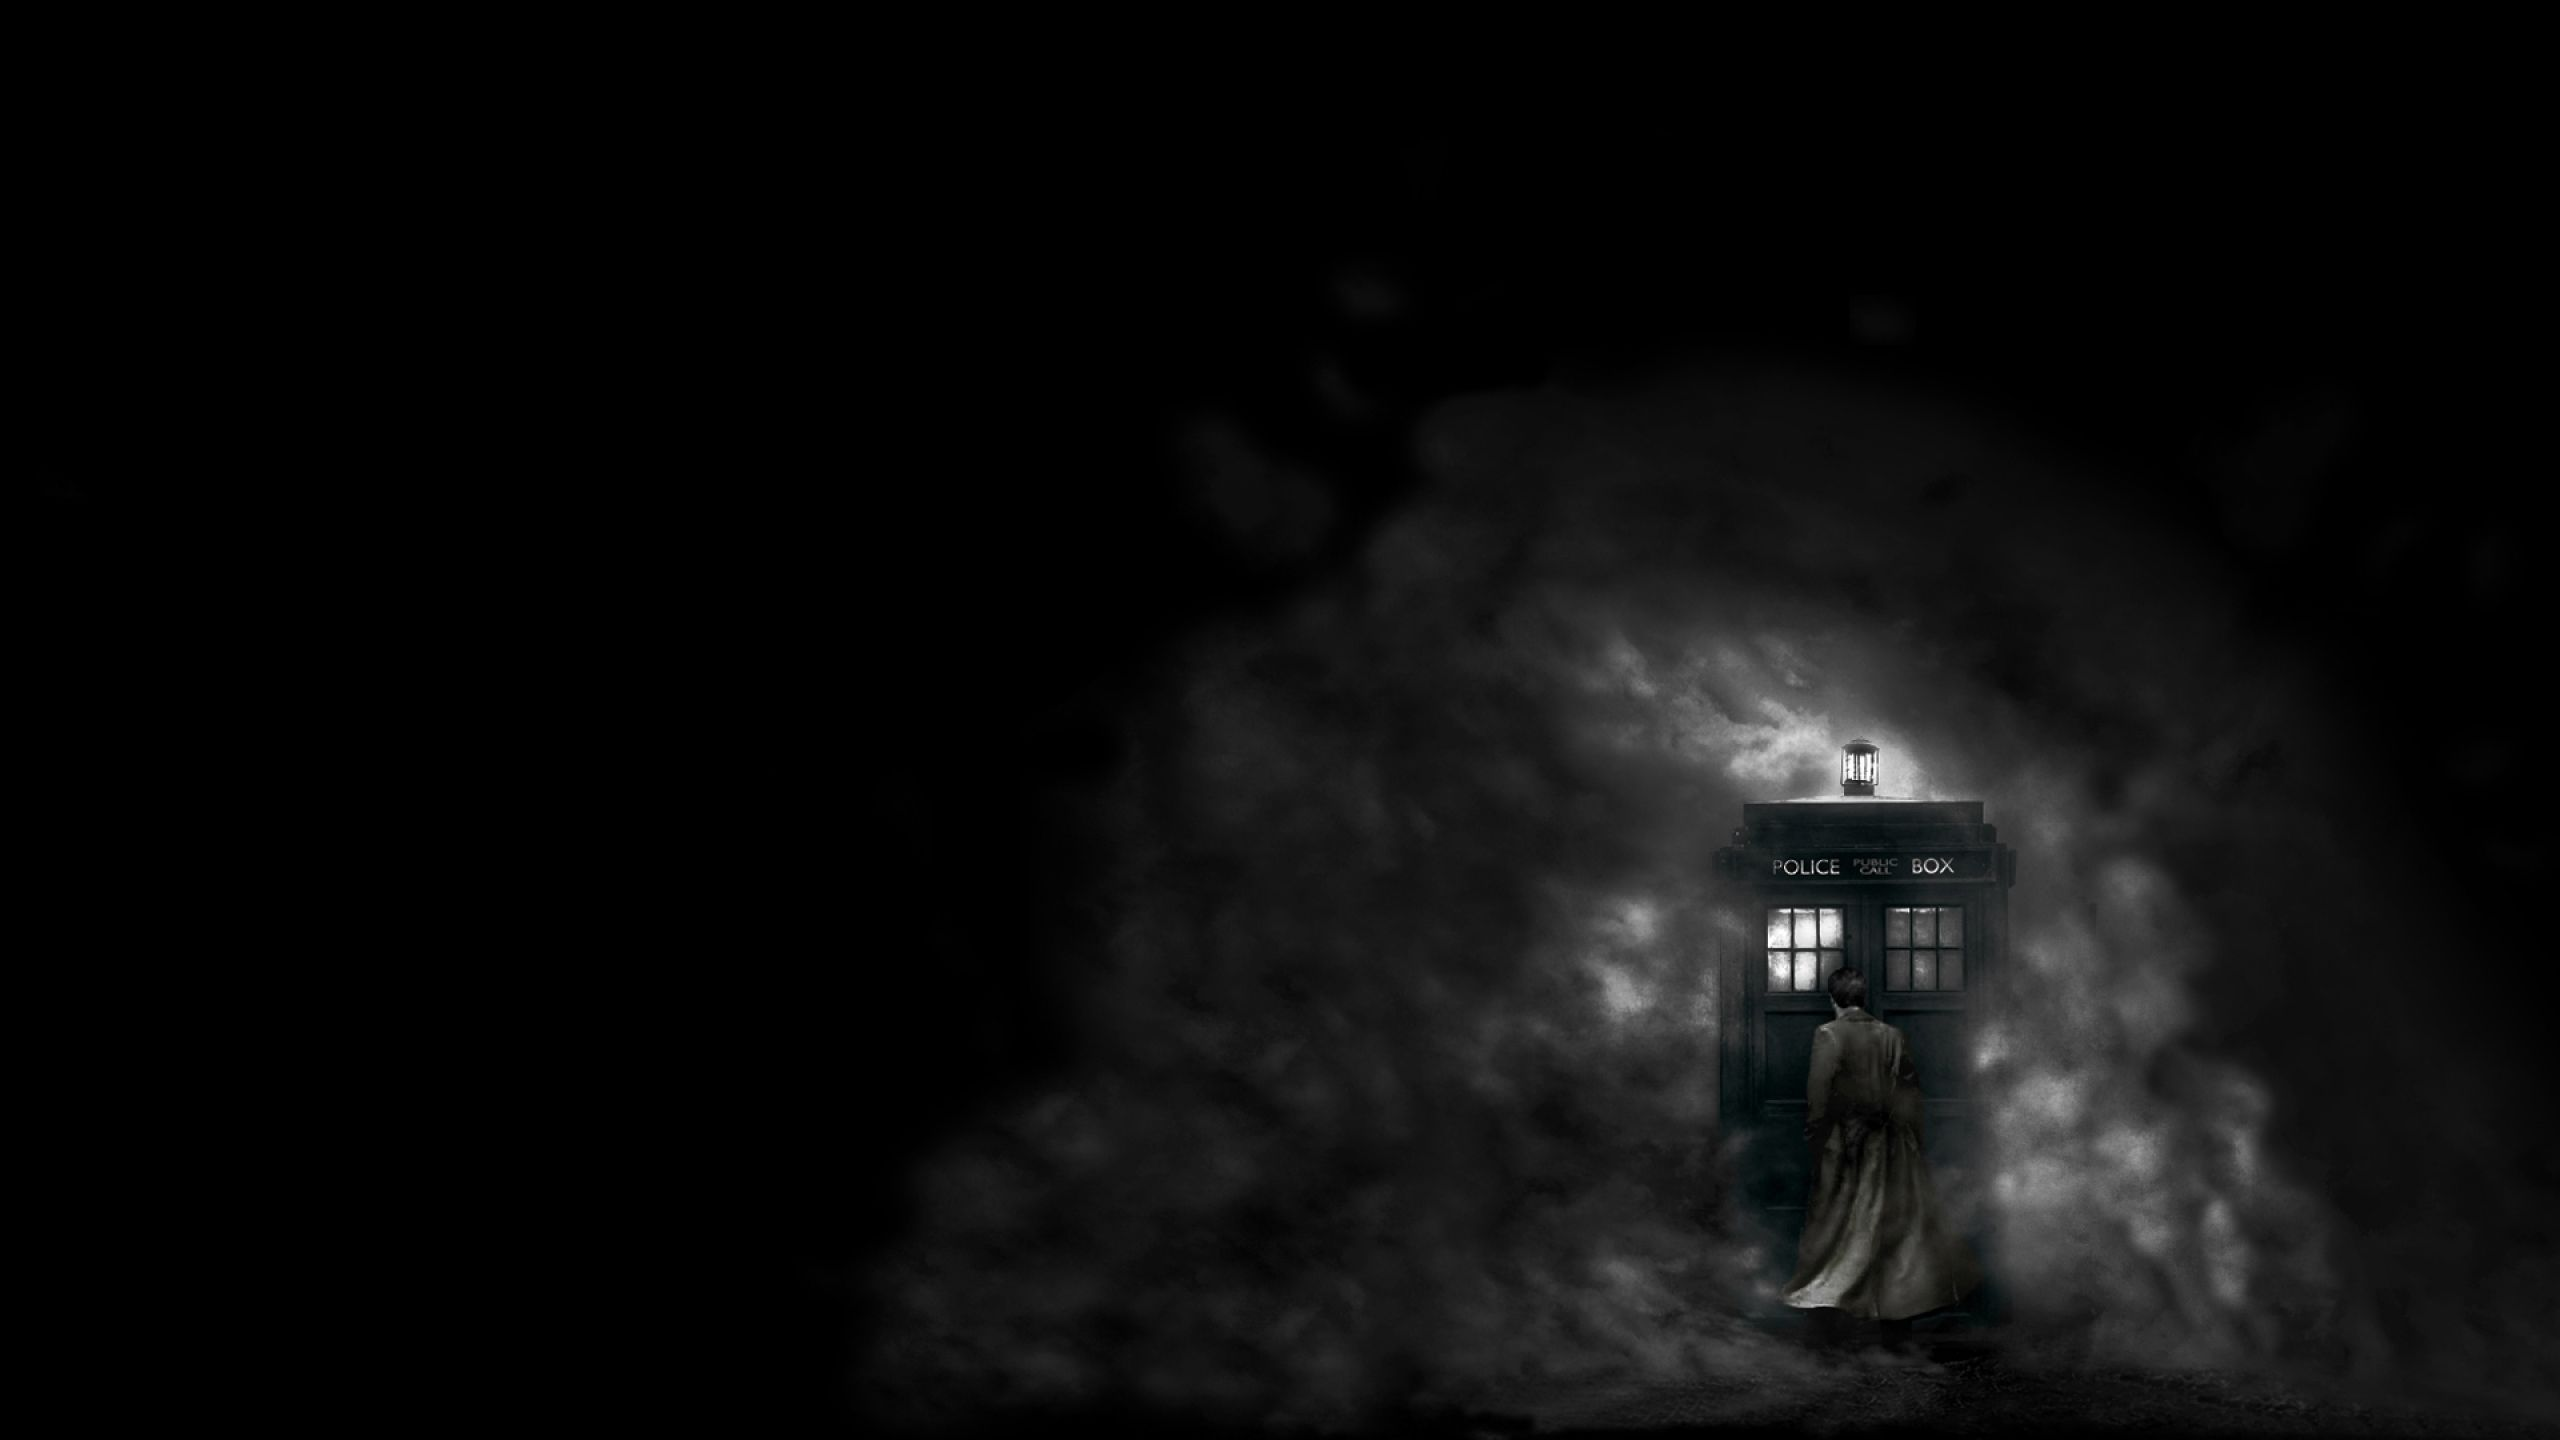 Tardis David Tennant Doctor Who Tenth Doctor 1920x1080 Wallpaper